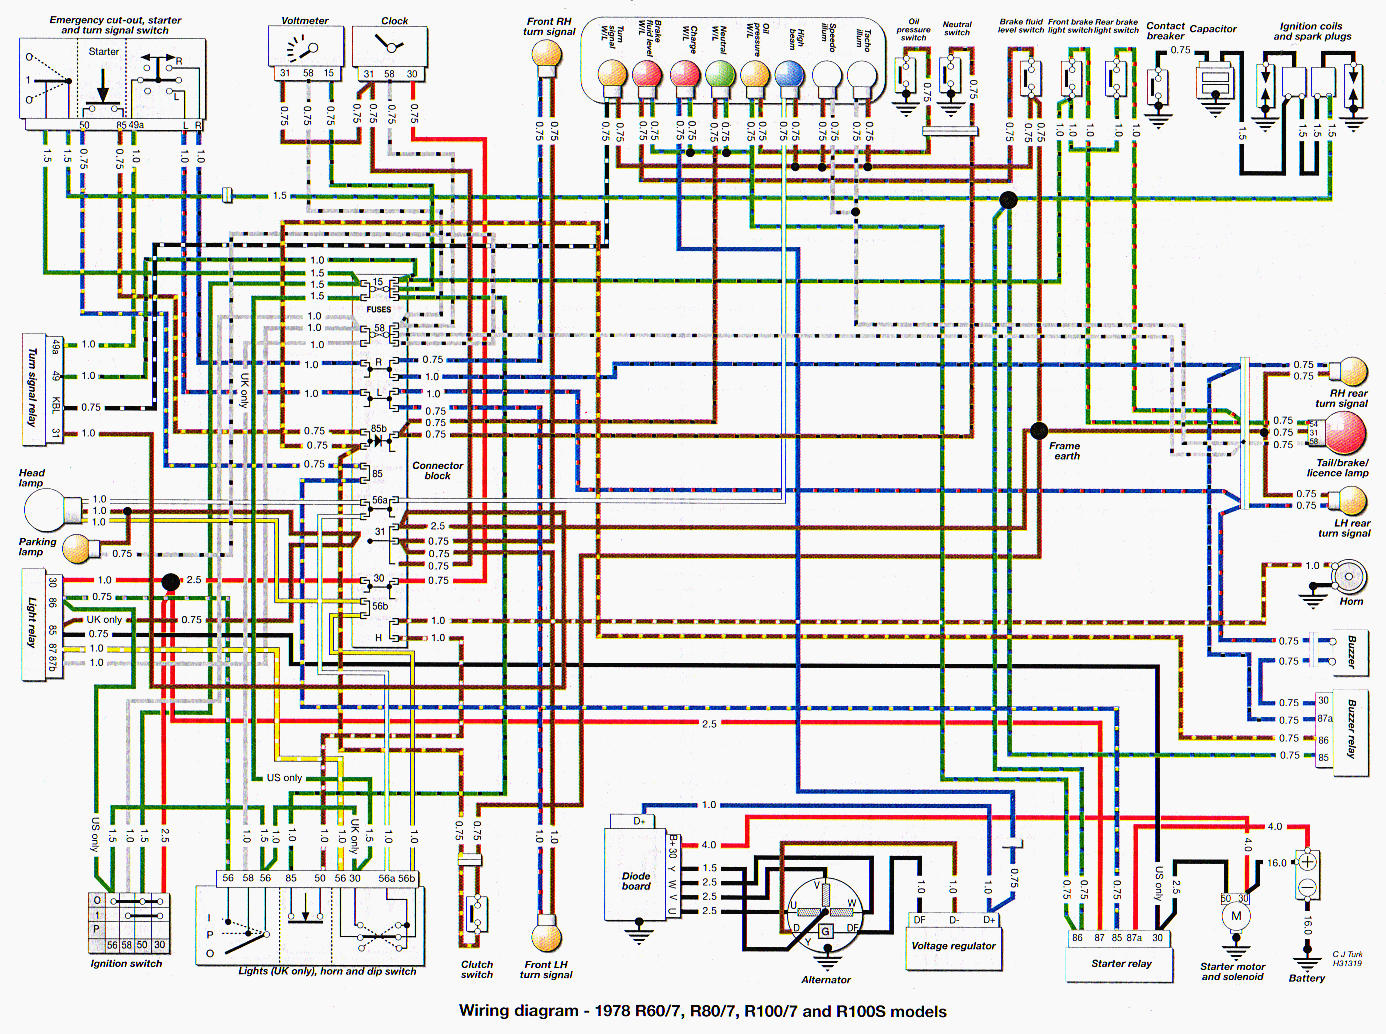 Wiring Diagram Of Rusi Motorcycle - Wiring Diagram Page on